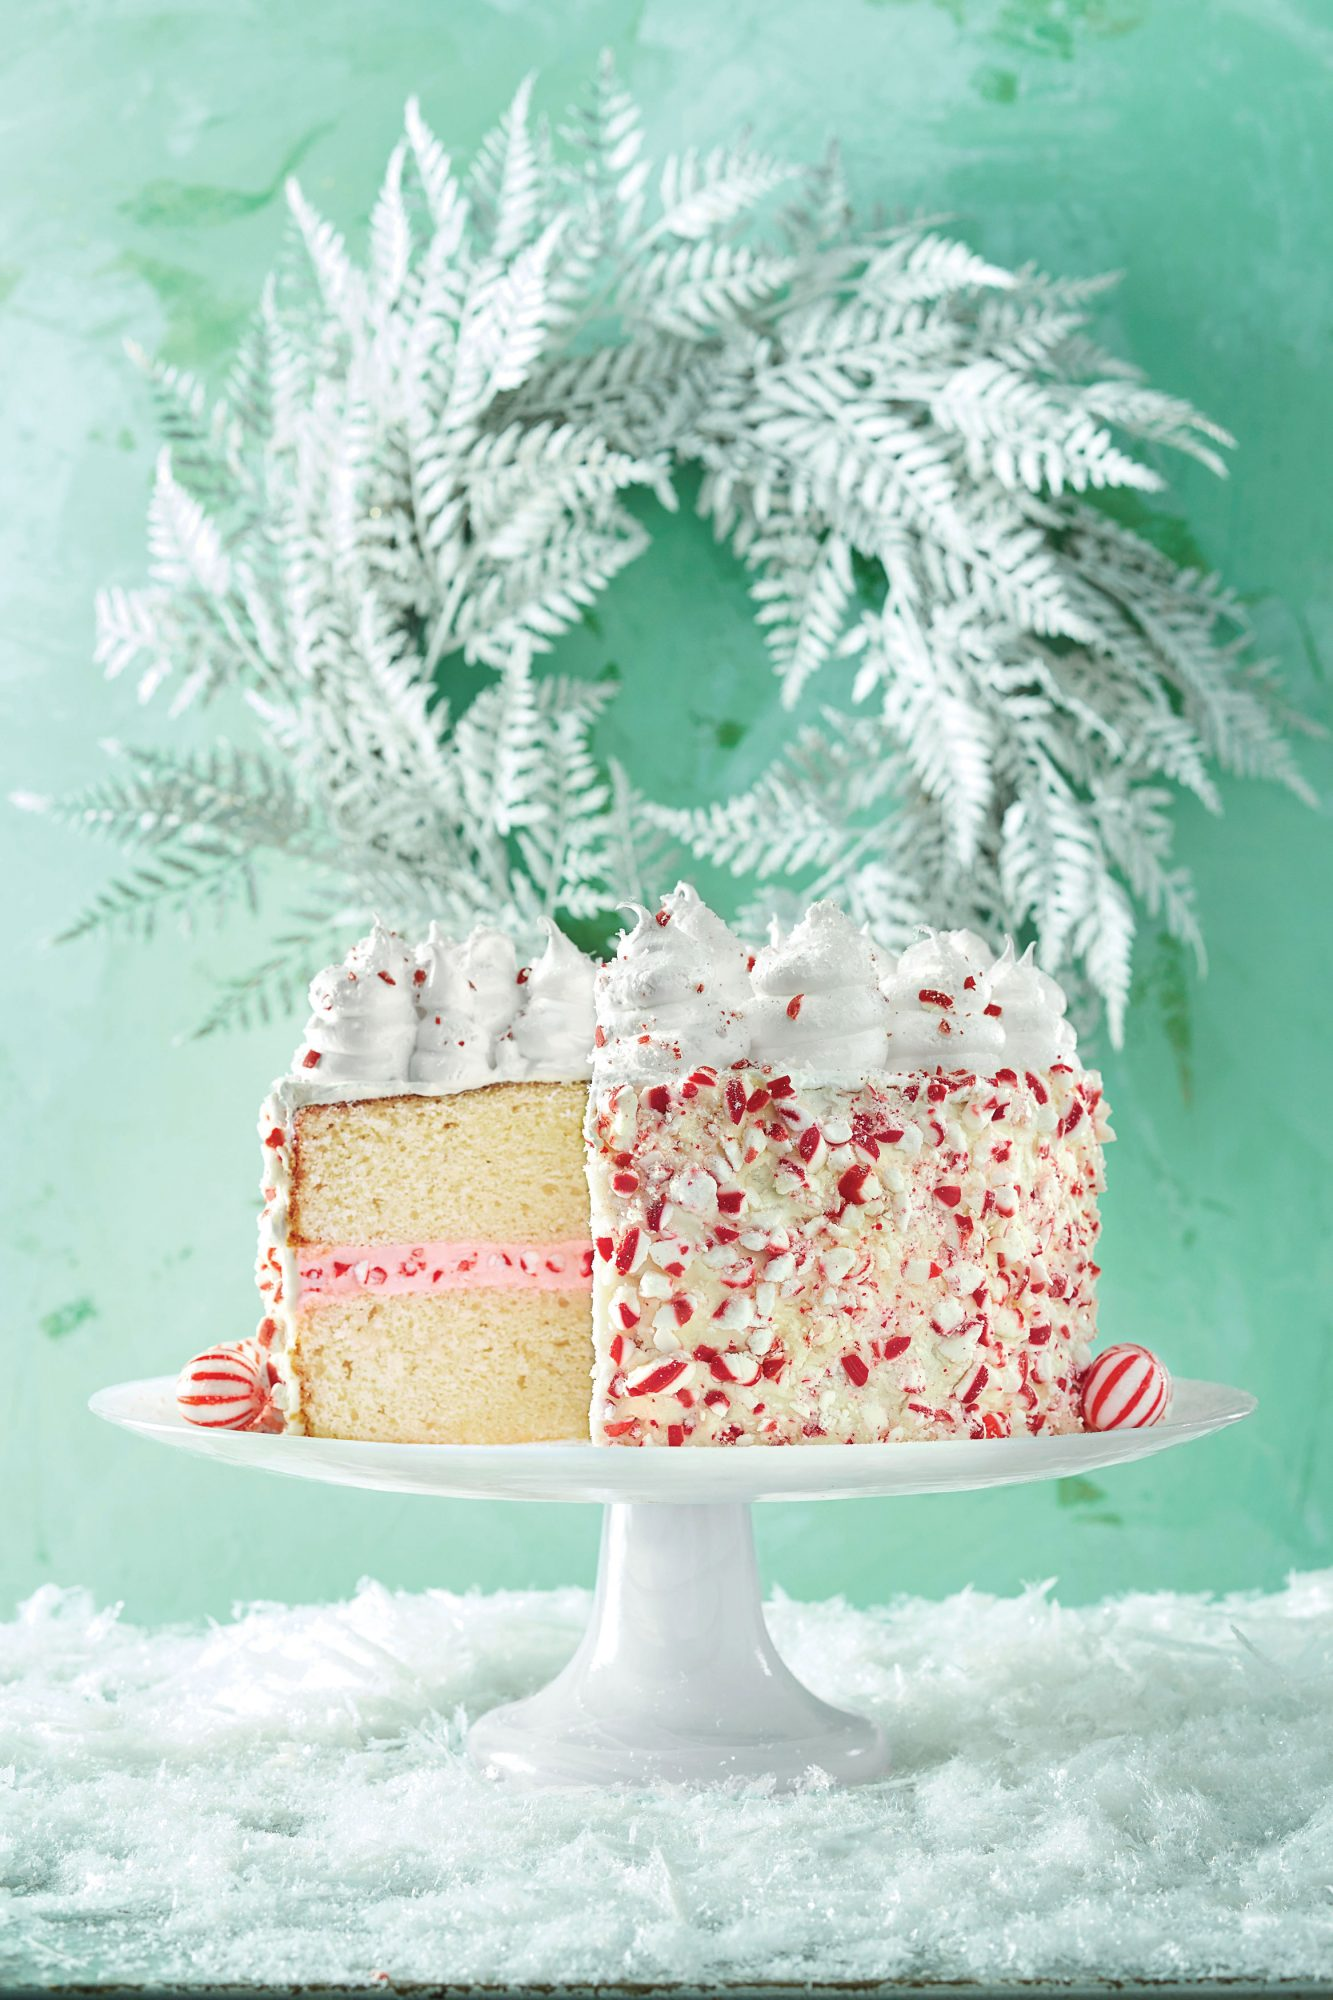 Peppermint Cake with Seven-Minute Frosting image